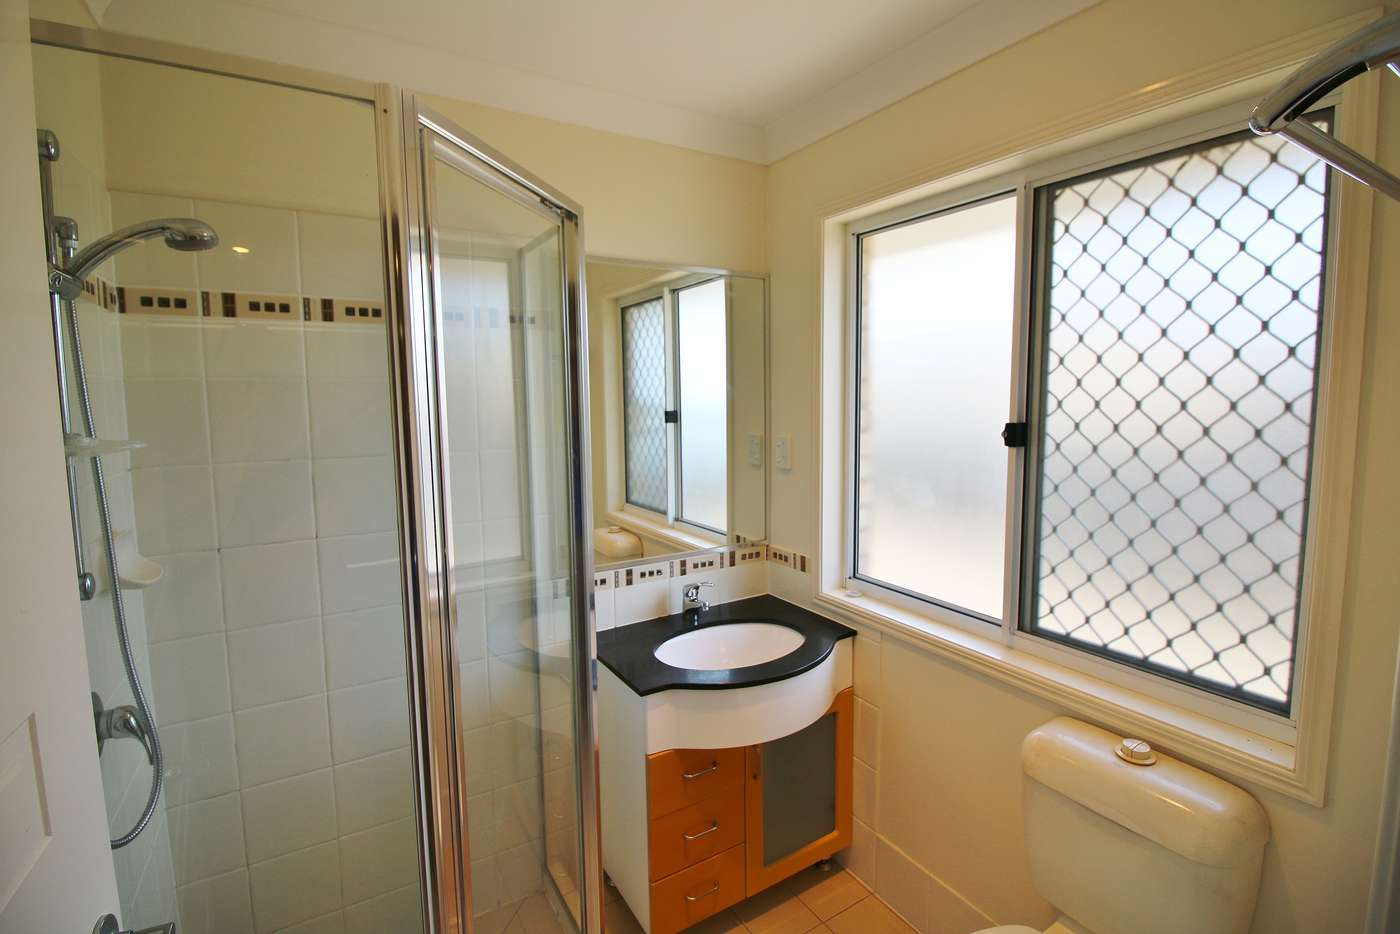 Seventh view of Homely house listing, 11 Stanford Pl, Laidley QLD 4341